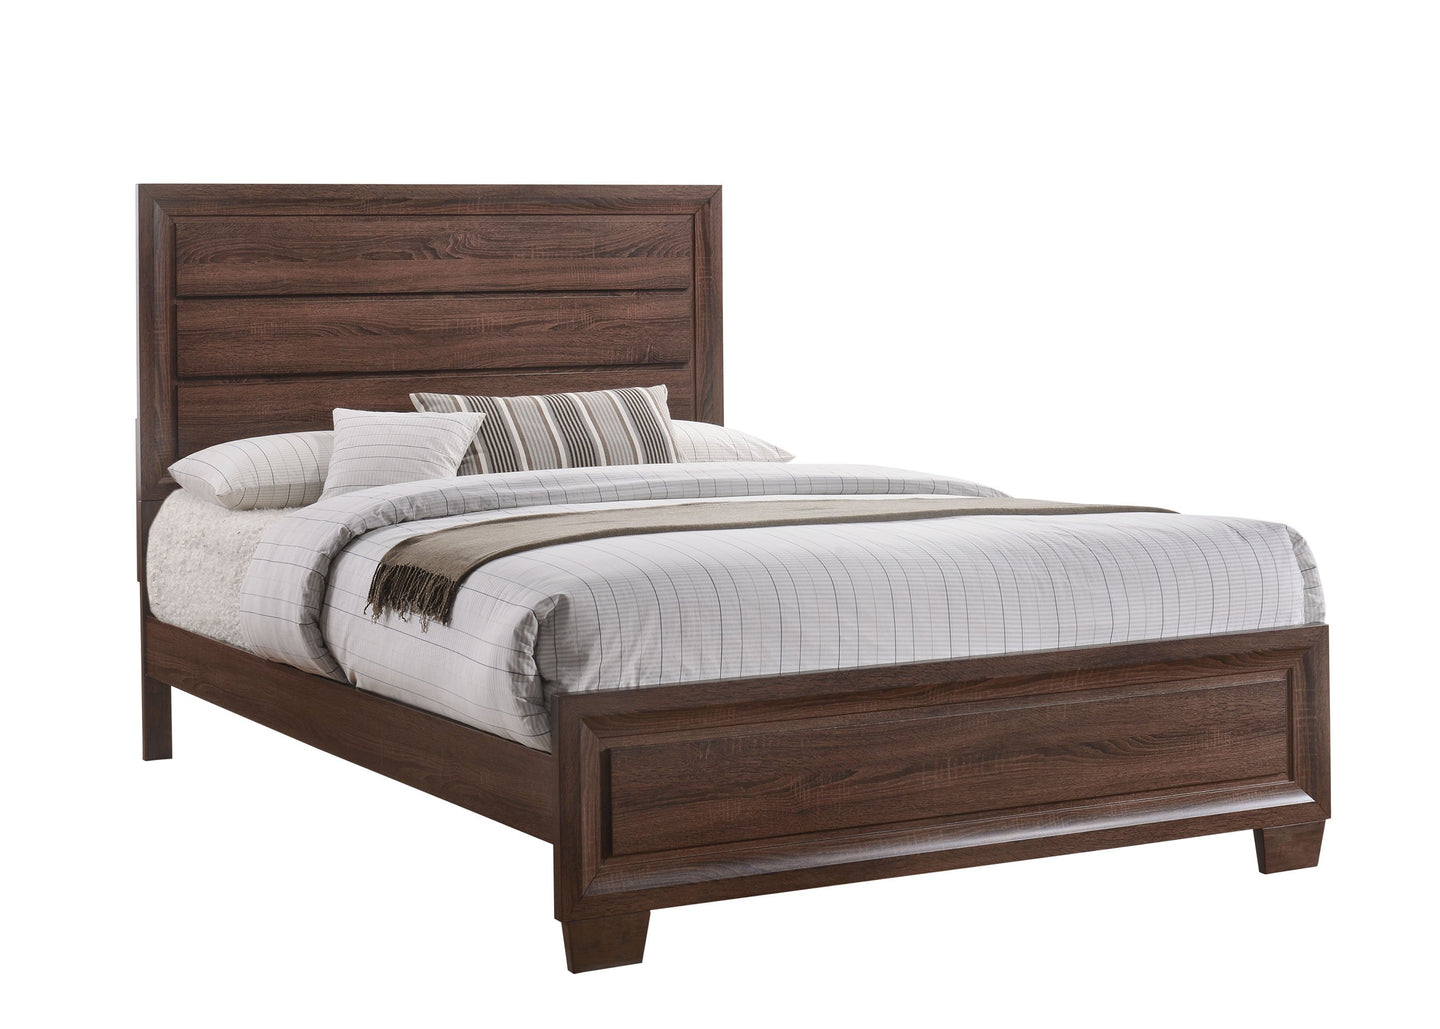 Brandon Medium Warm Brown Eastern King Bed